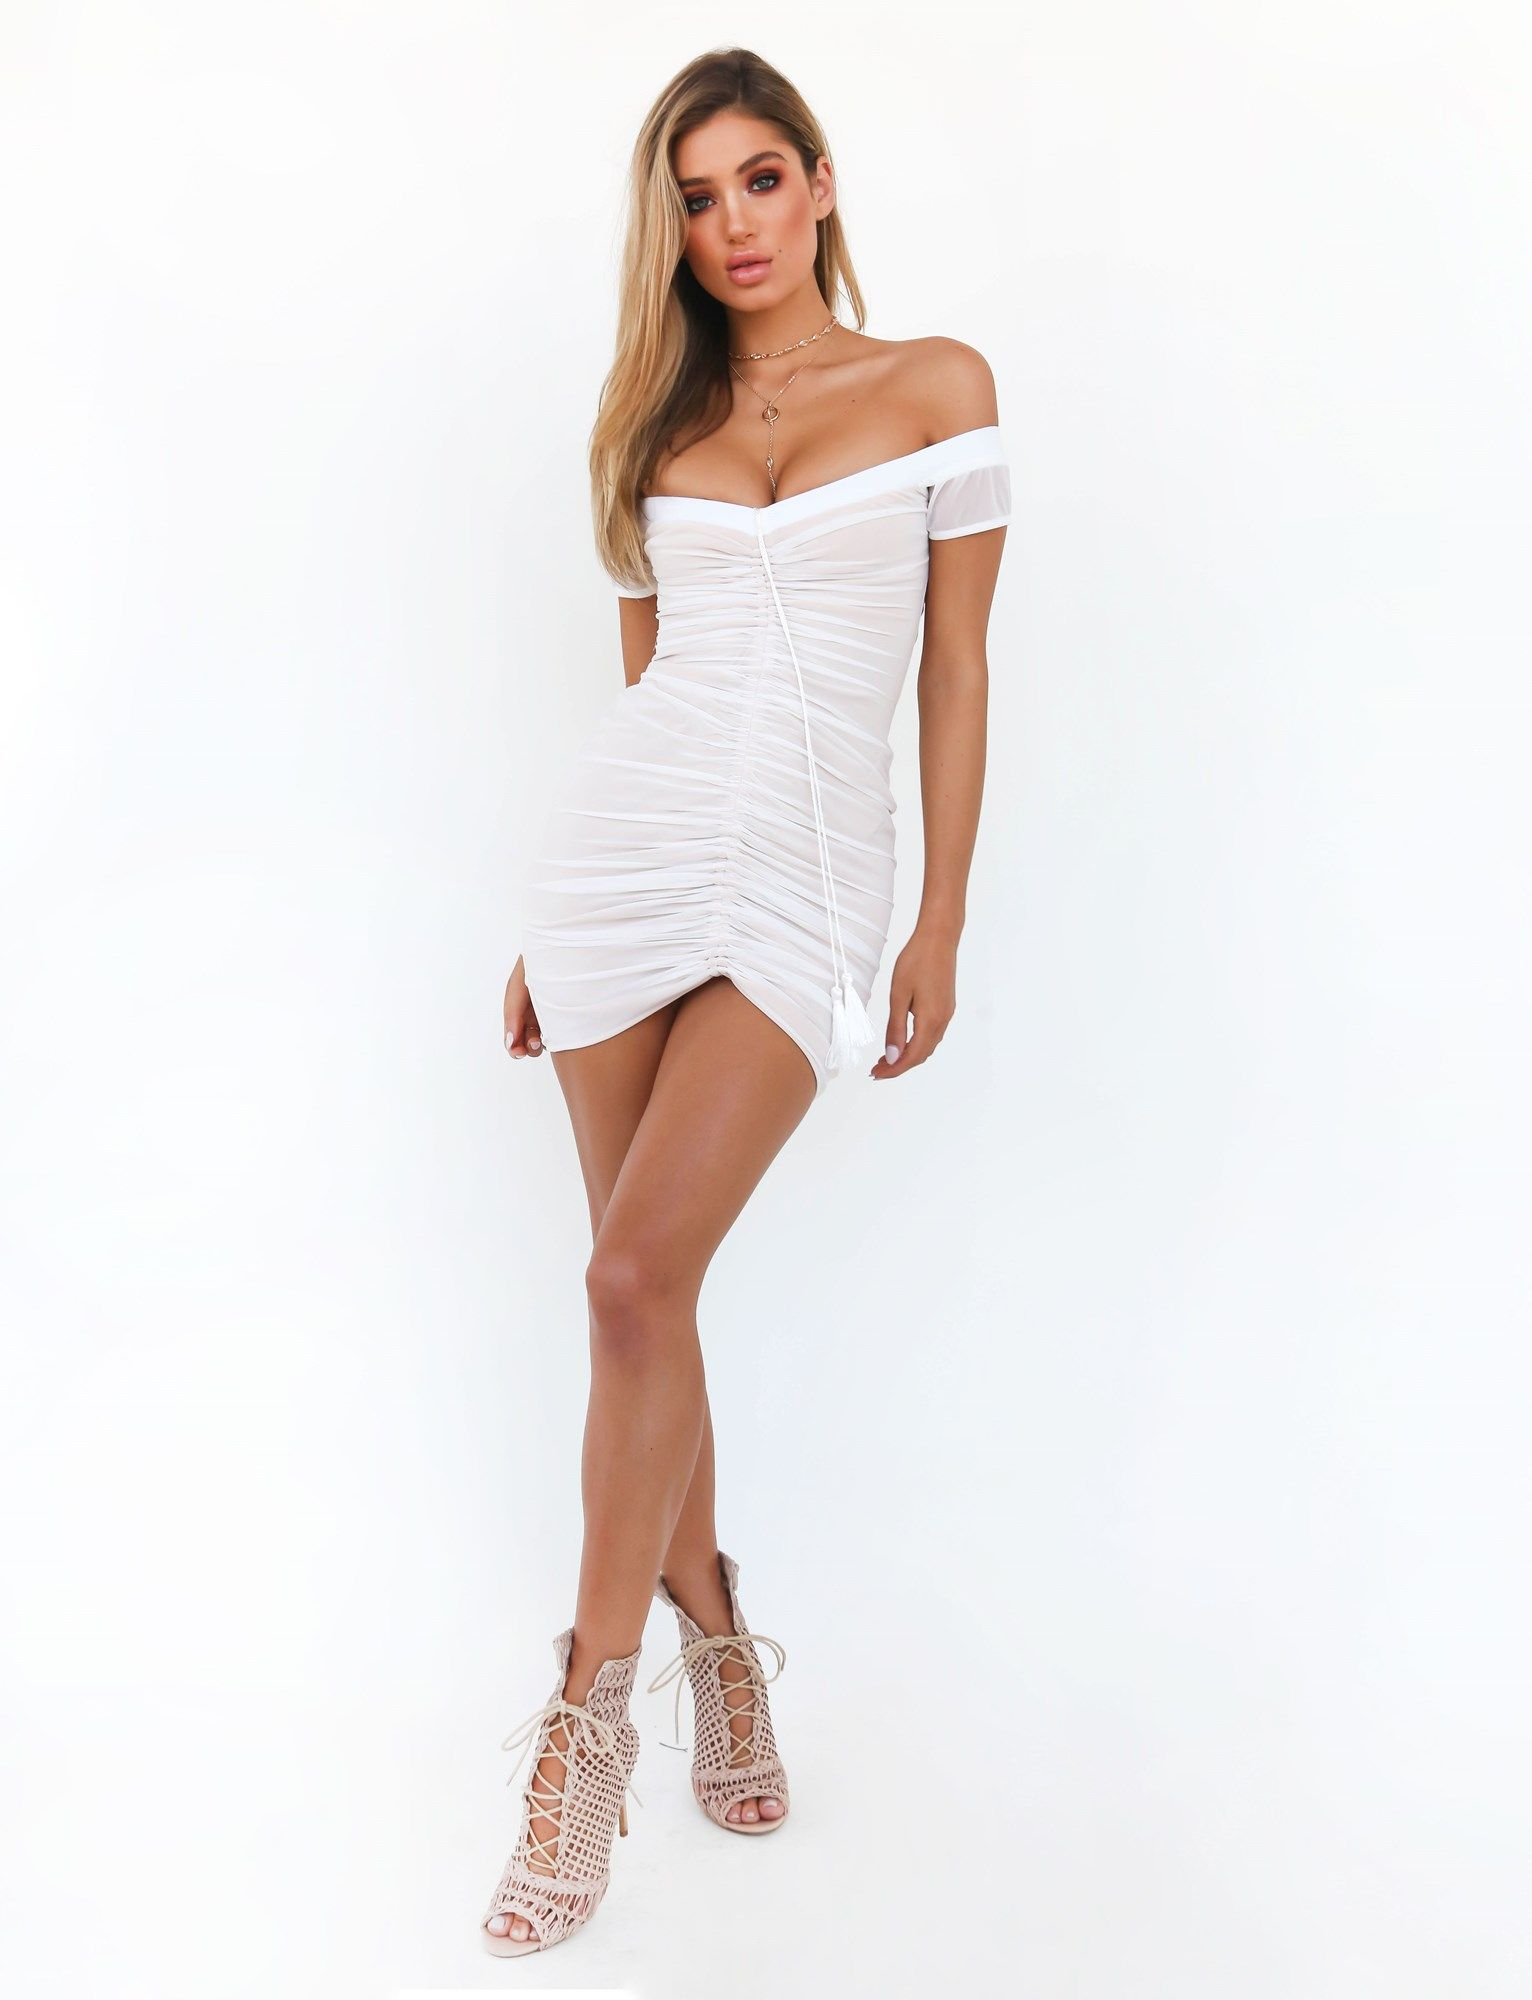 Pre- Order Tiger Mist Rush Hour Dress | Glam | Pinterest